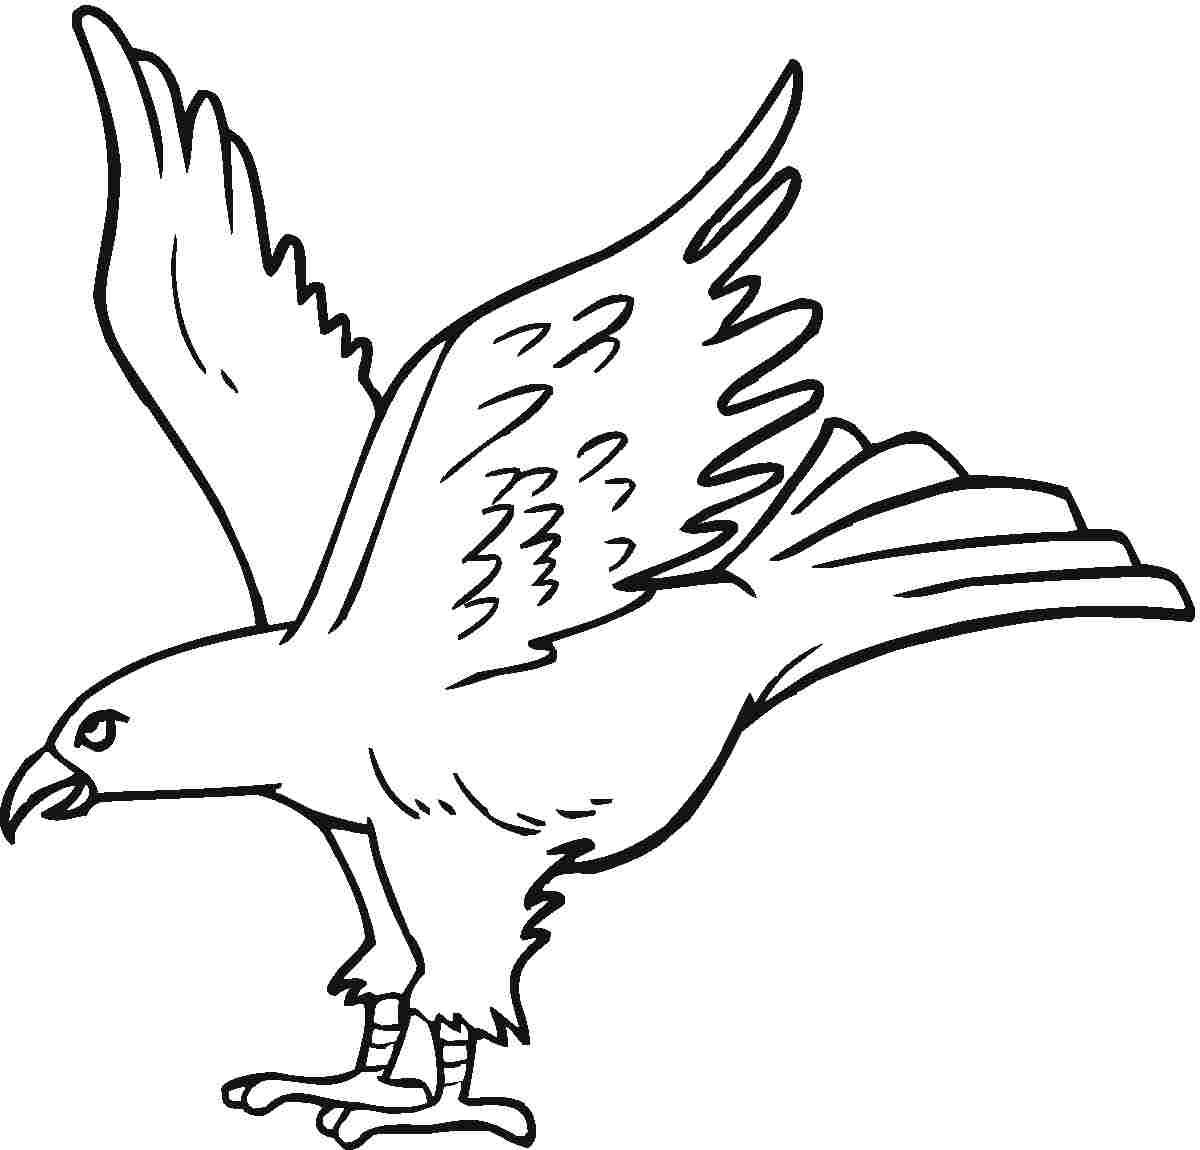 coloring pages of eagles - photo#20